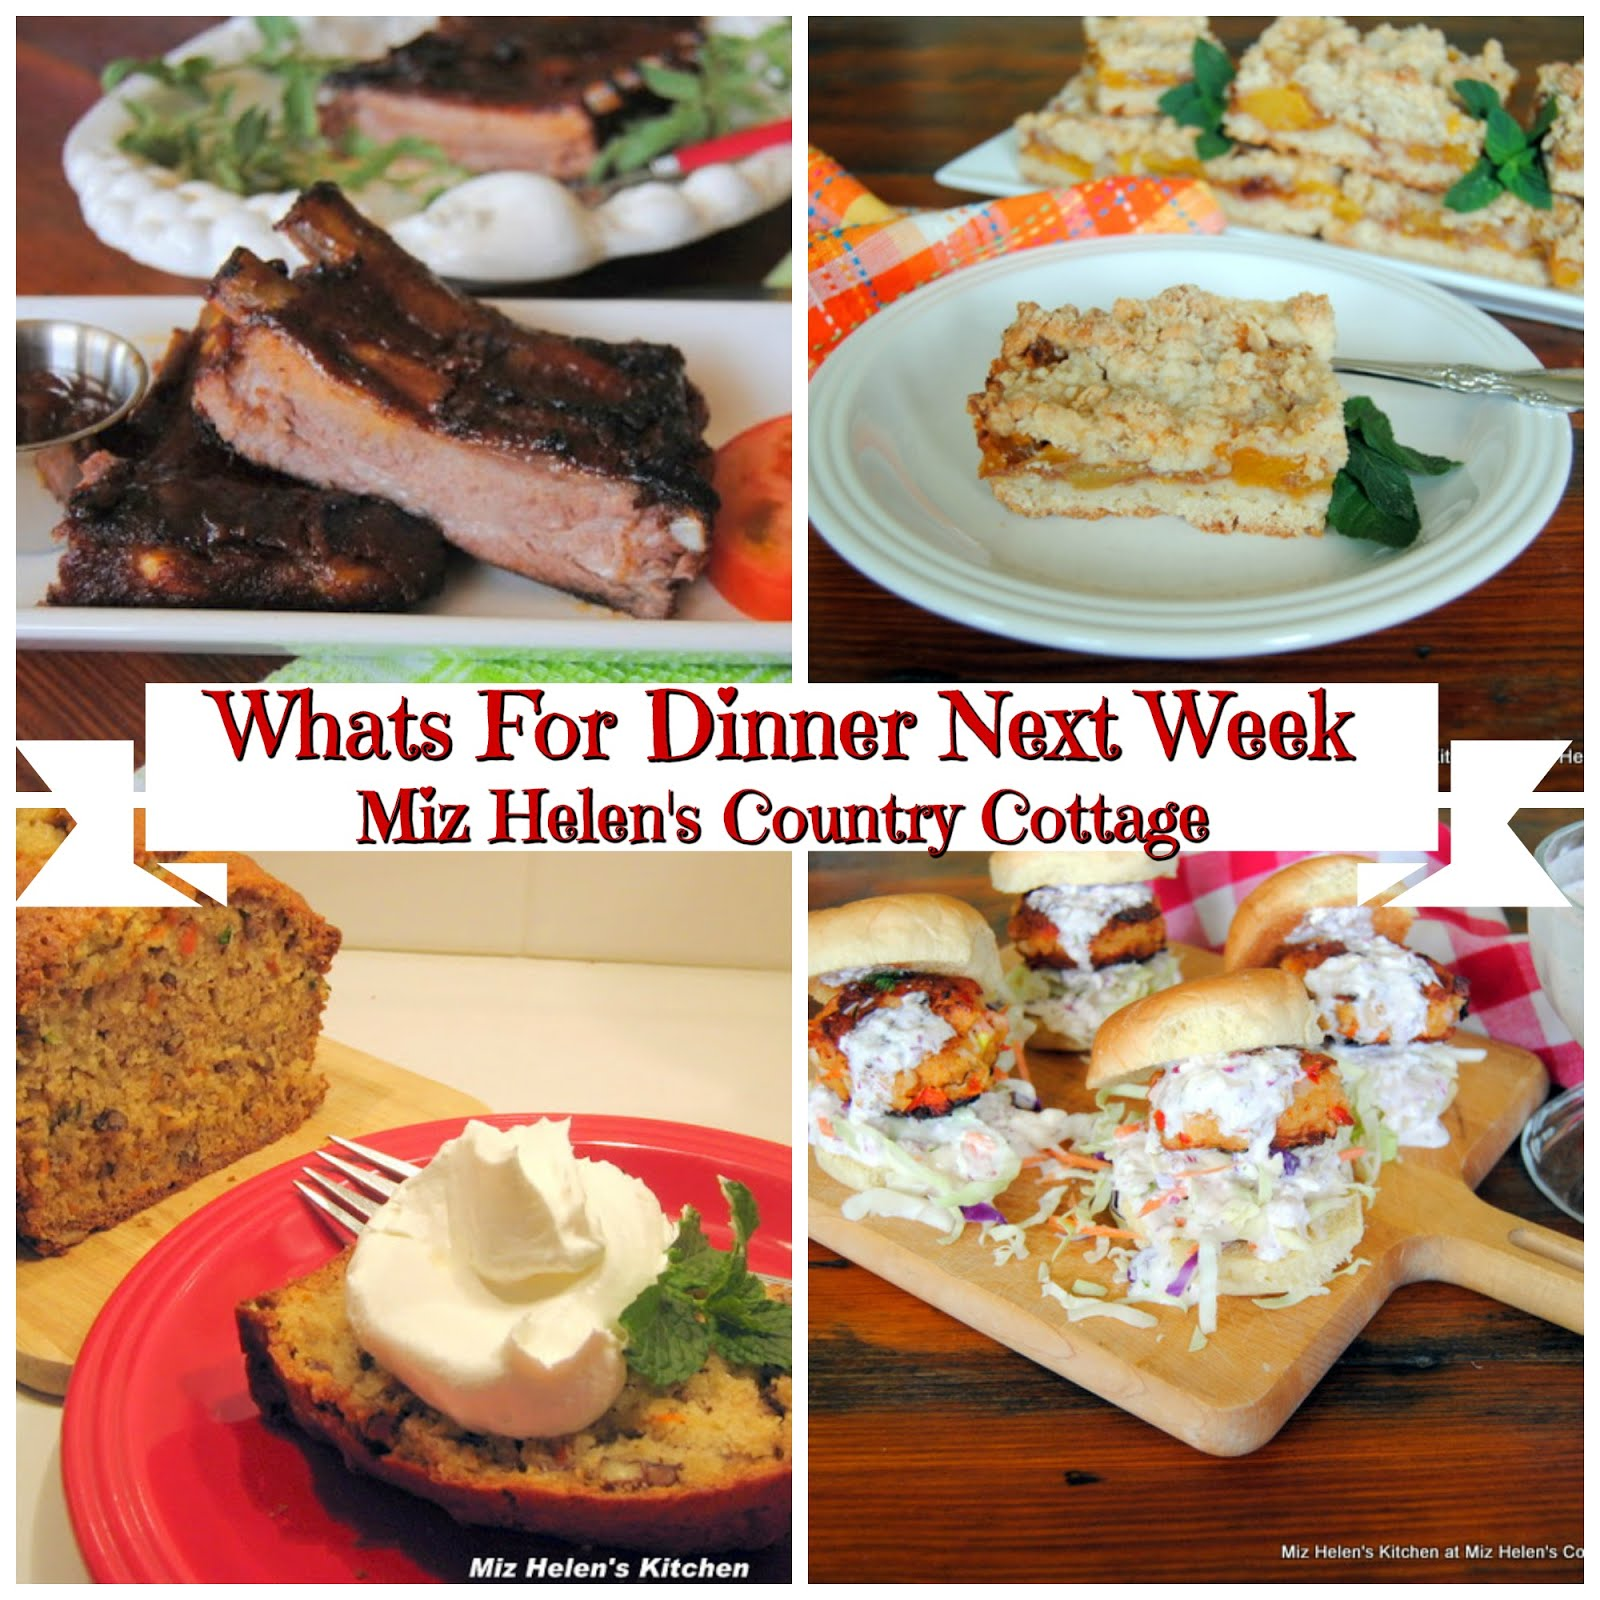 Whats For Dinner Next Week * Week of 8-11-19